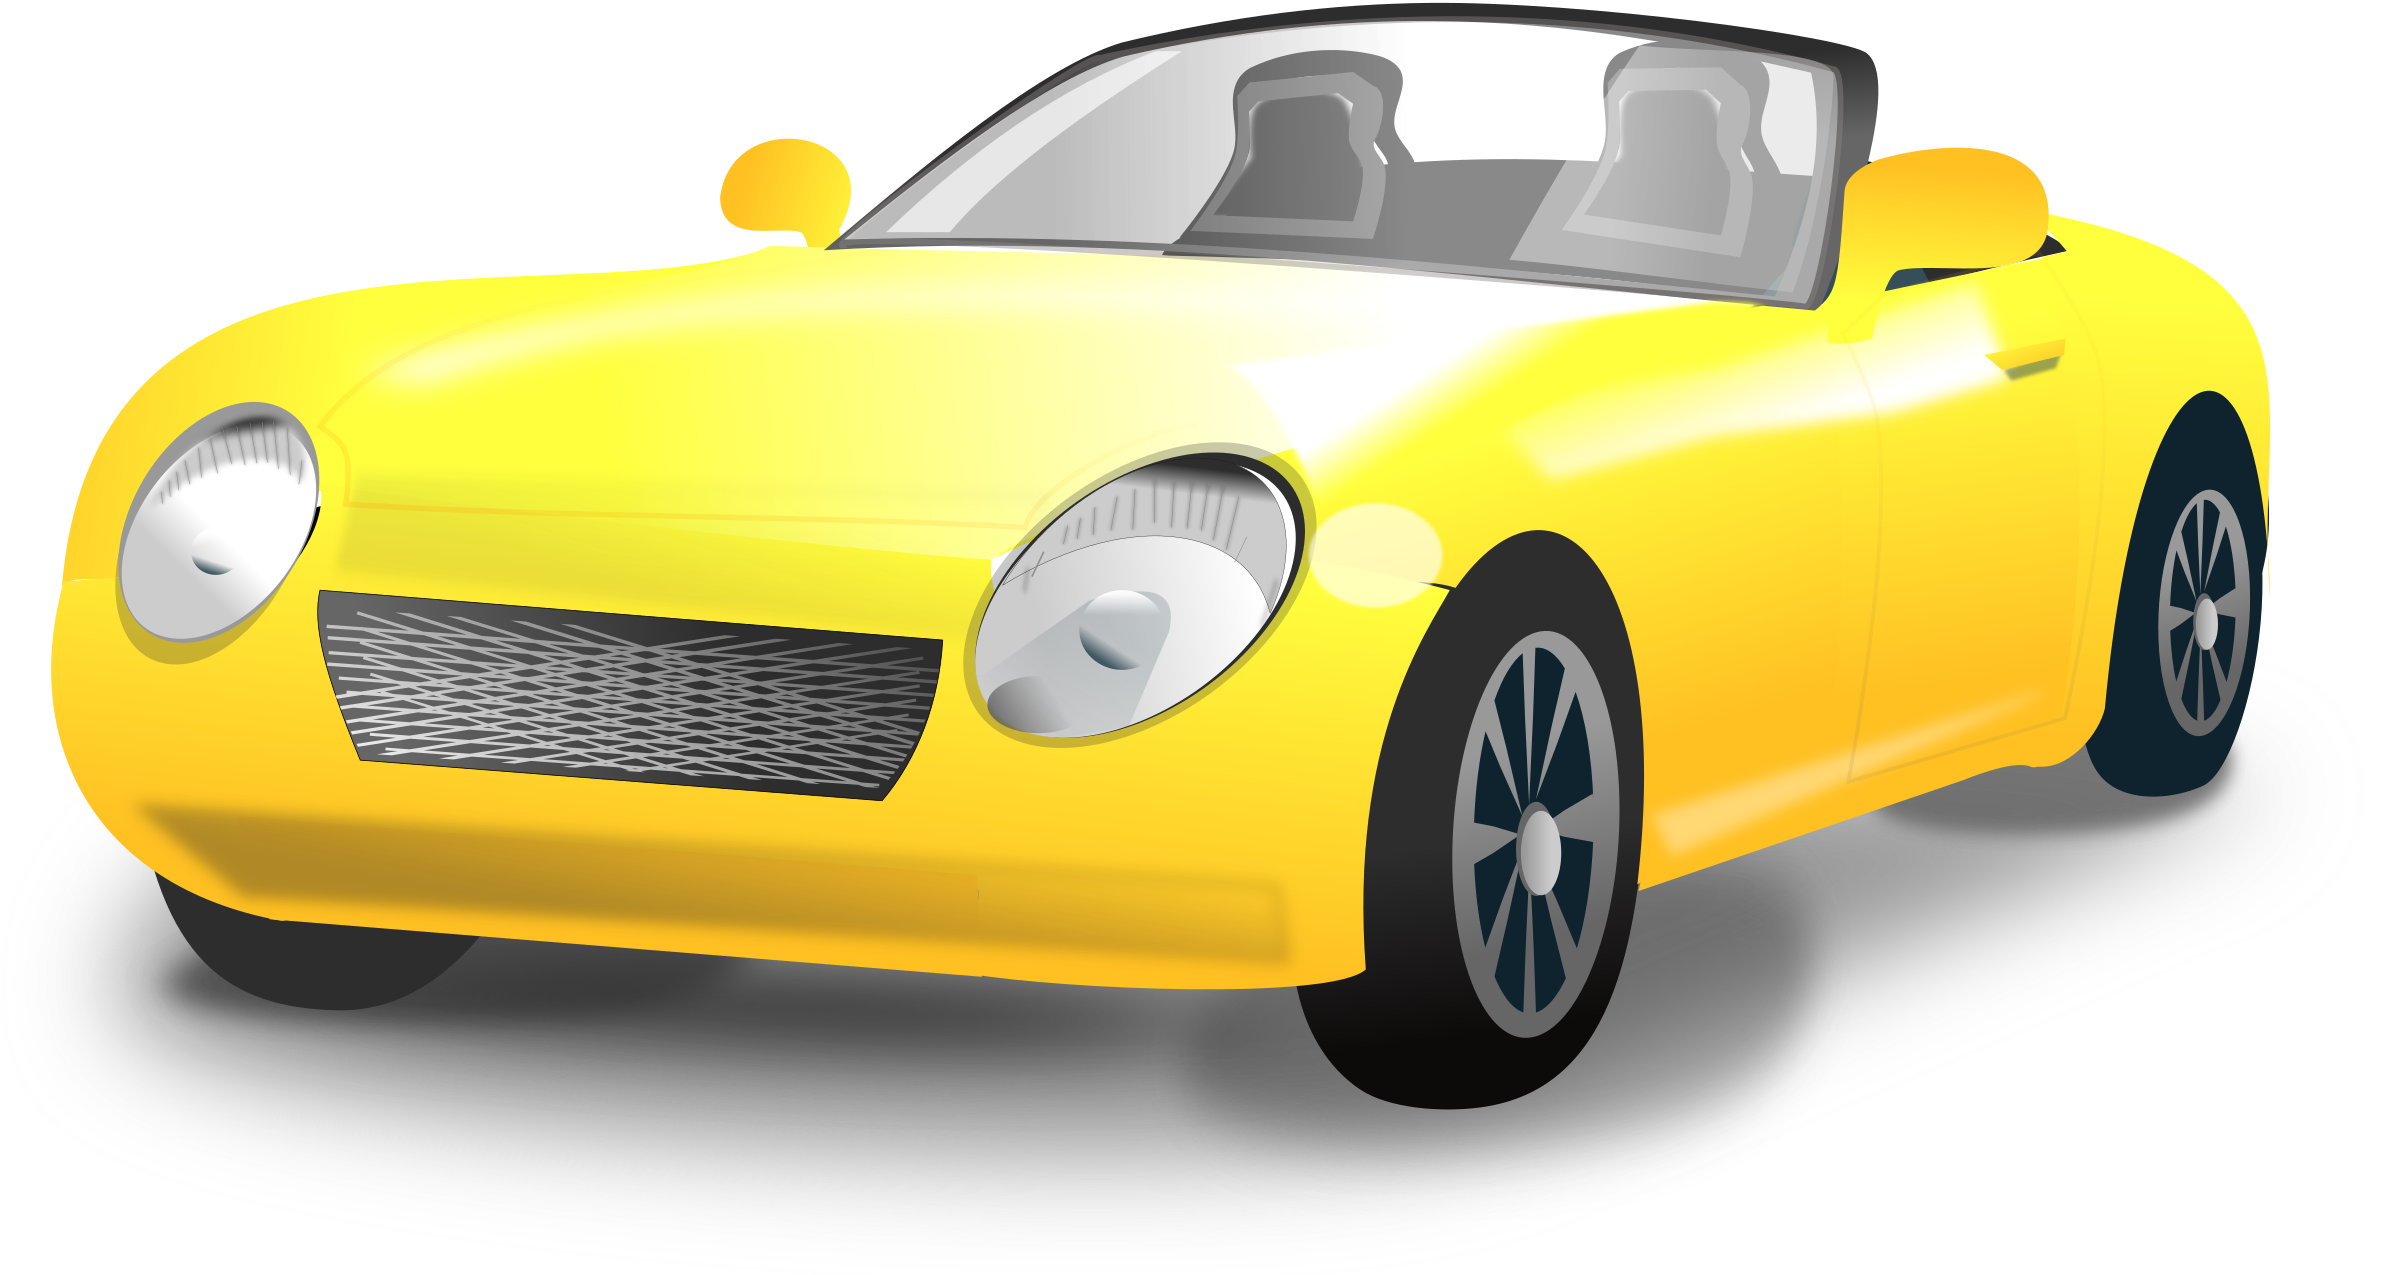 Expensive car clipart black and white download Clipart - Yellow Convertible sports car black and white download